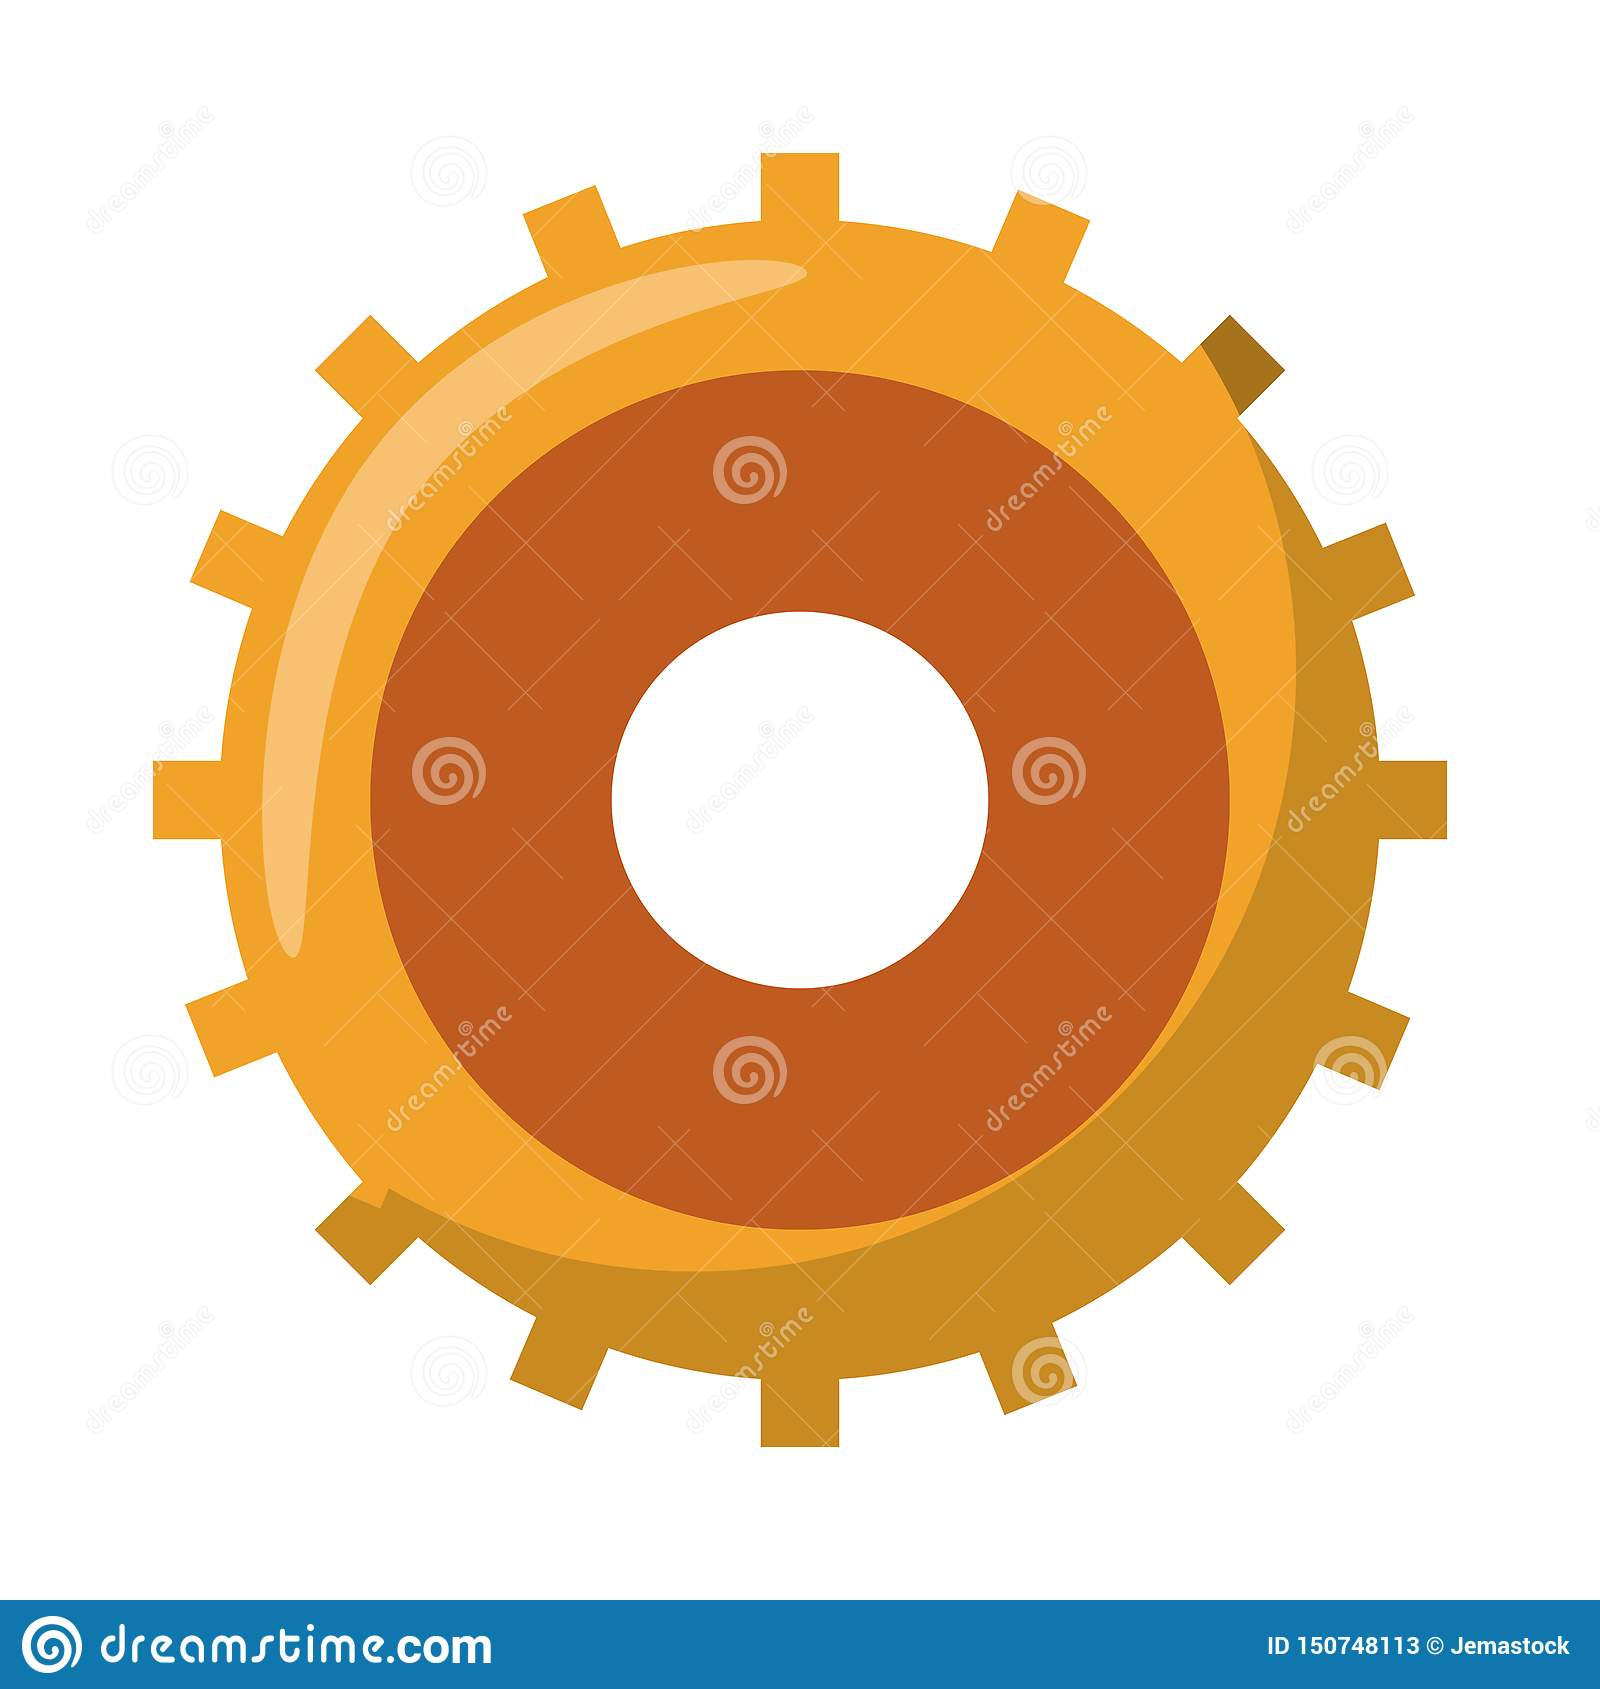 Gear machinery piece symbol isolated